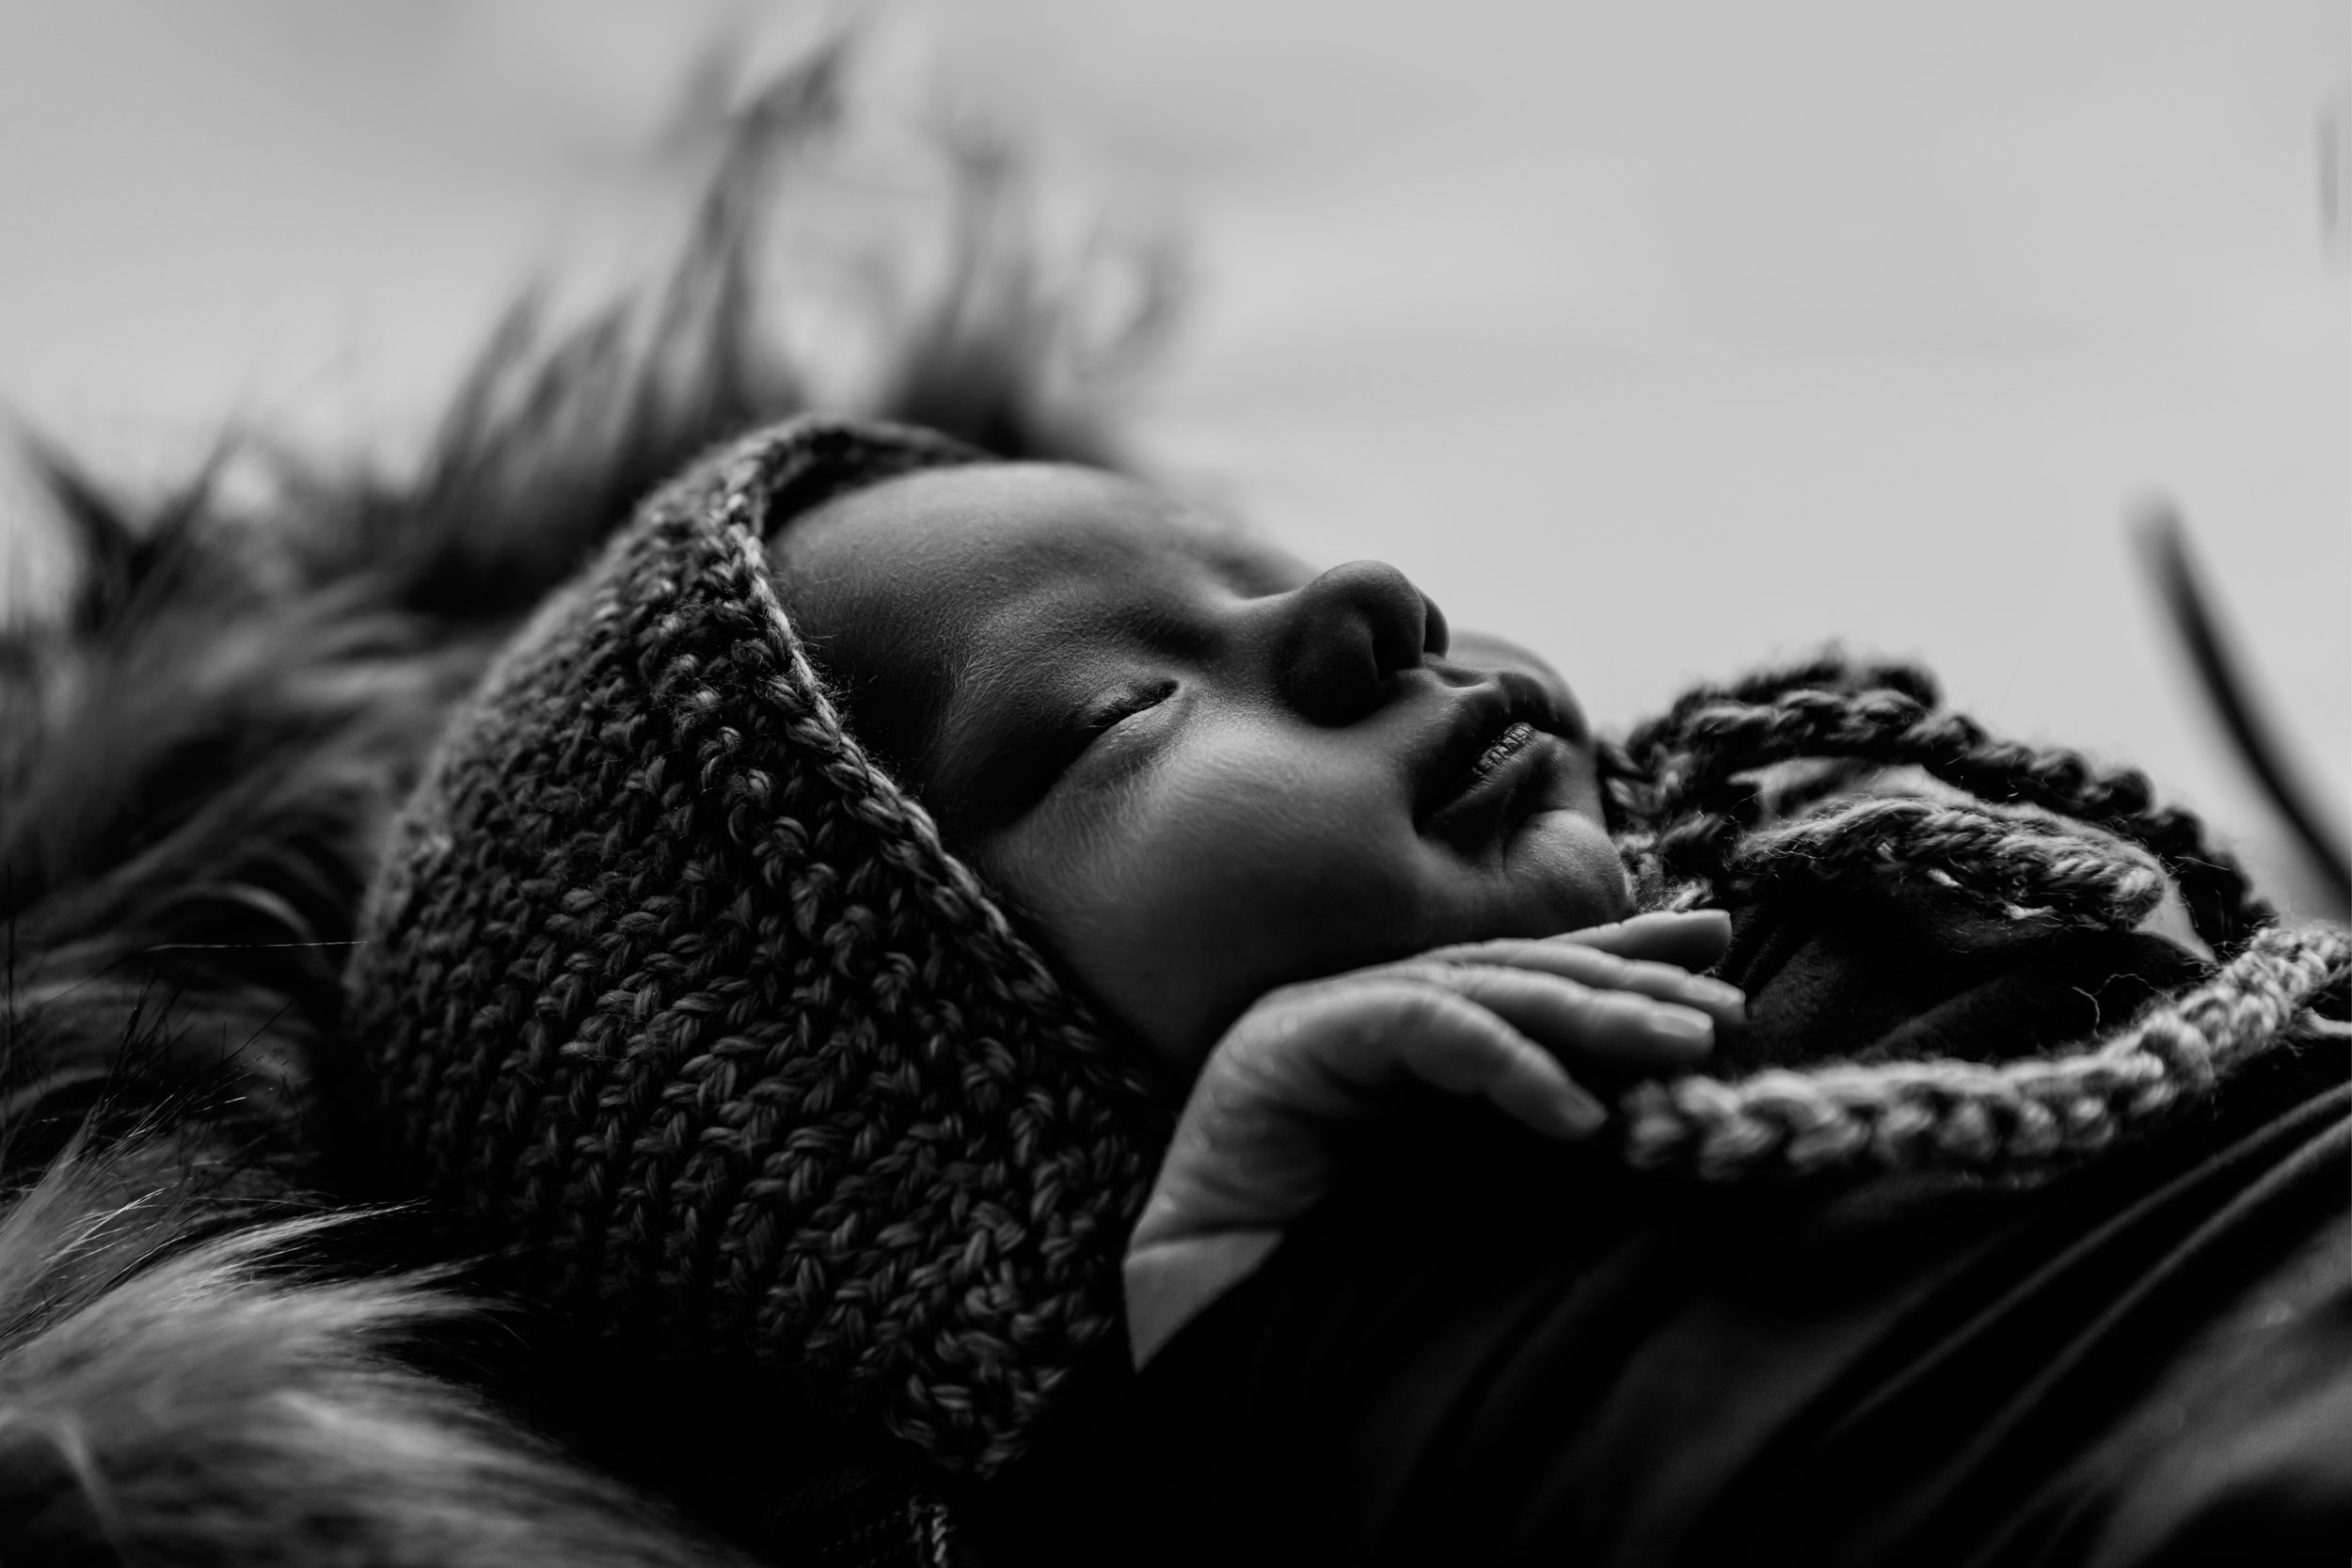 austin-mn-newborn-photography-rochester-mn-albert-lea-mn-family-photography-studio-modern-hunting-outdoors-black-and-white